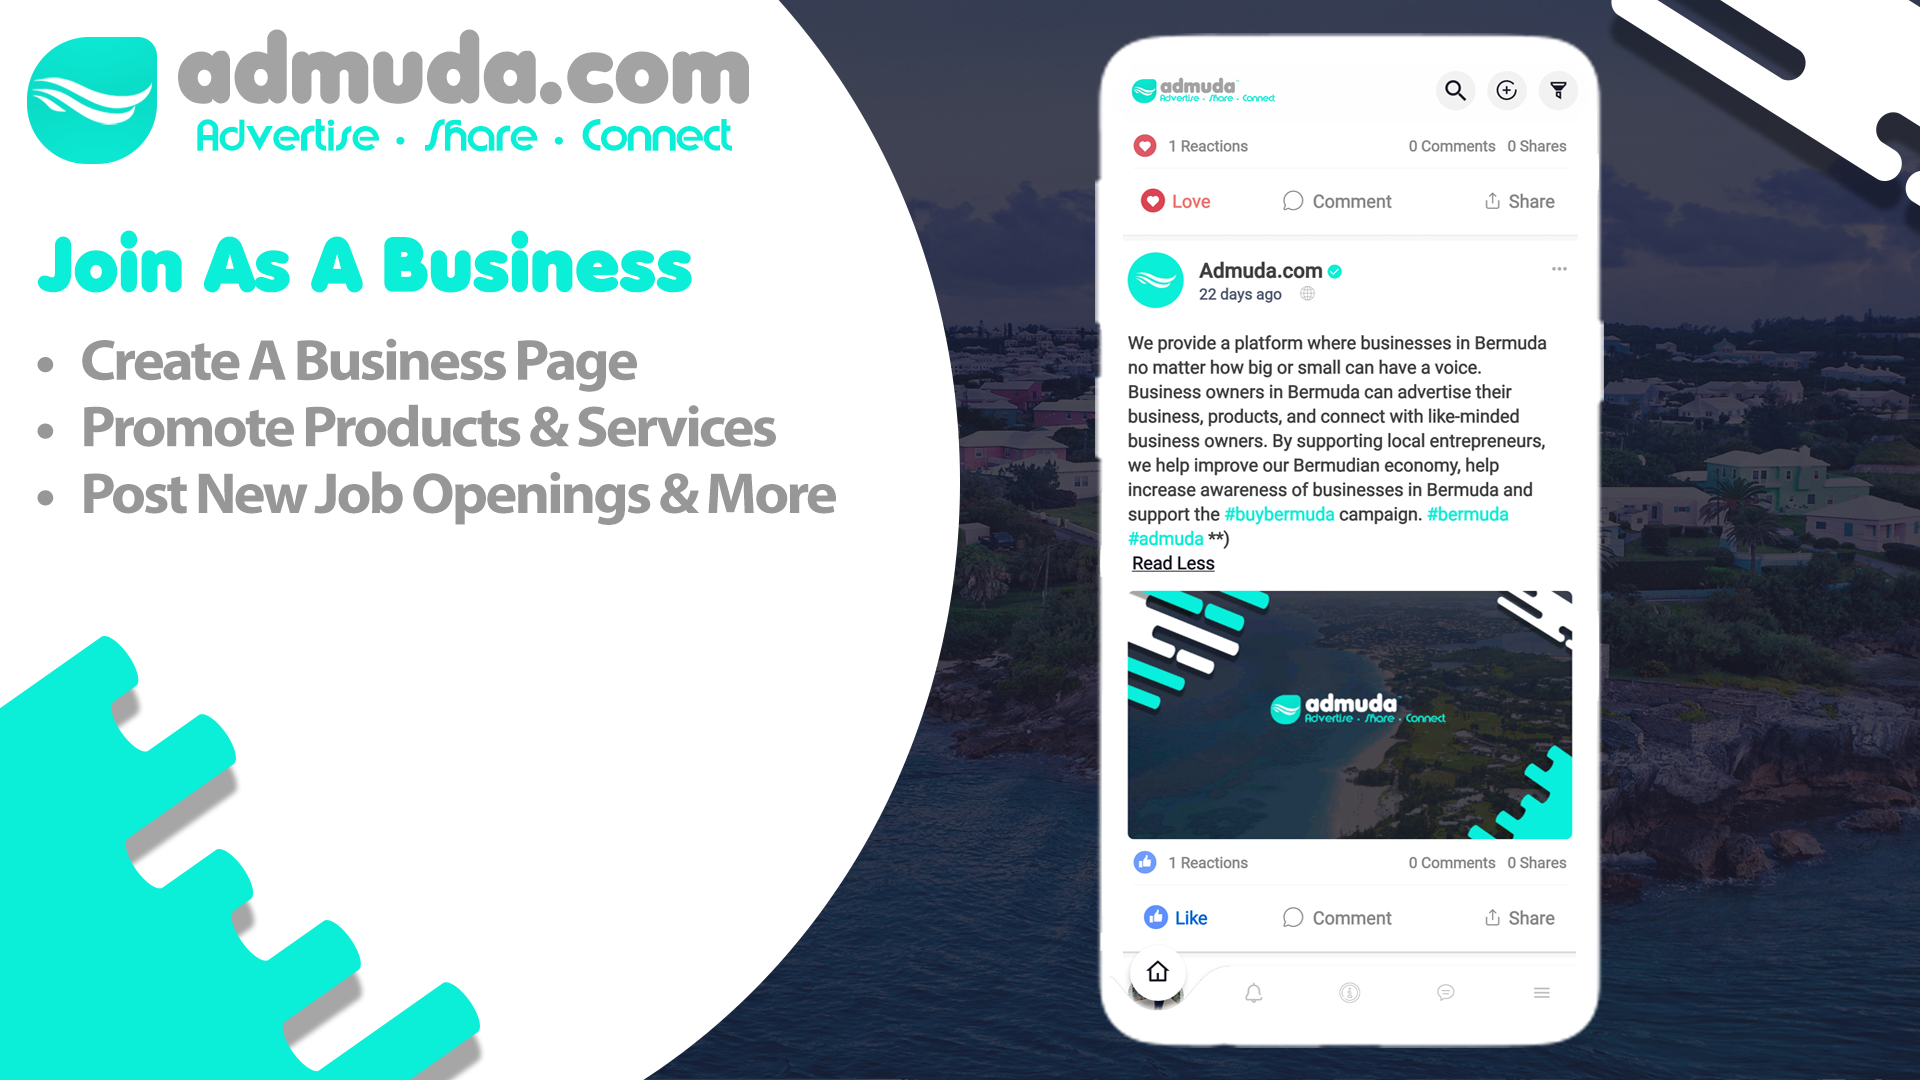 Admuda-Google-Play-Store-Join-As-A-Business